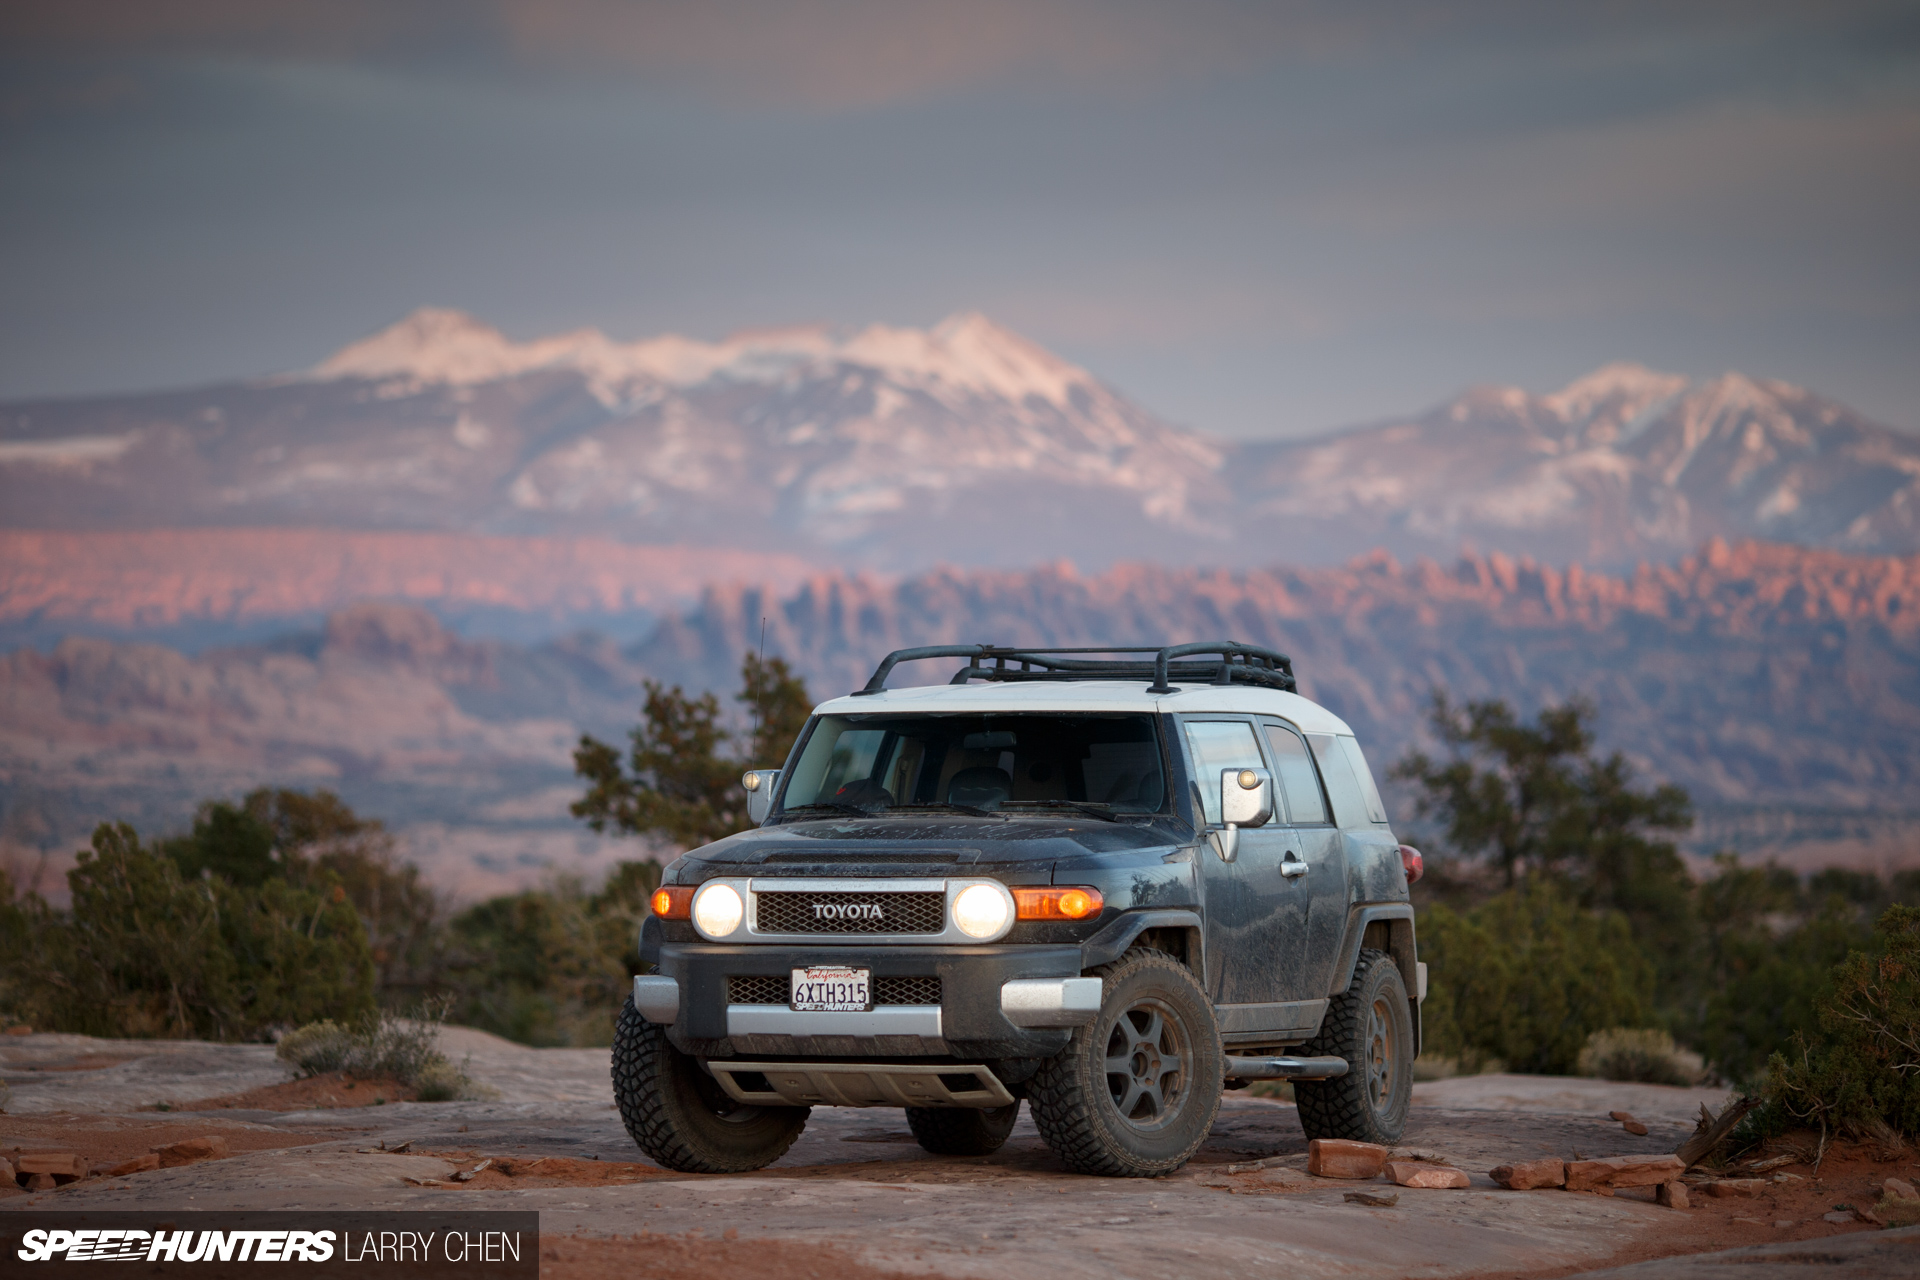 Fj Cruiser Modified : Project fj cruiser chasing off road racing speedhunters